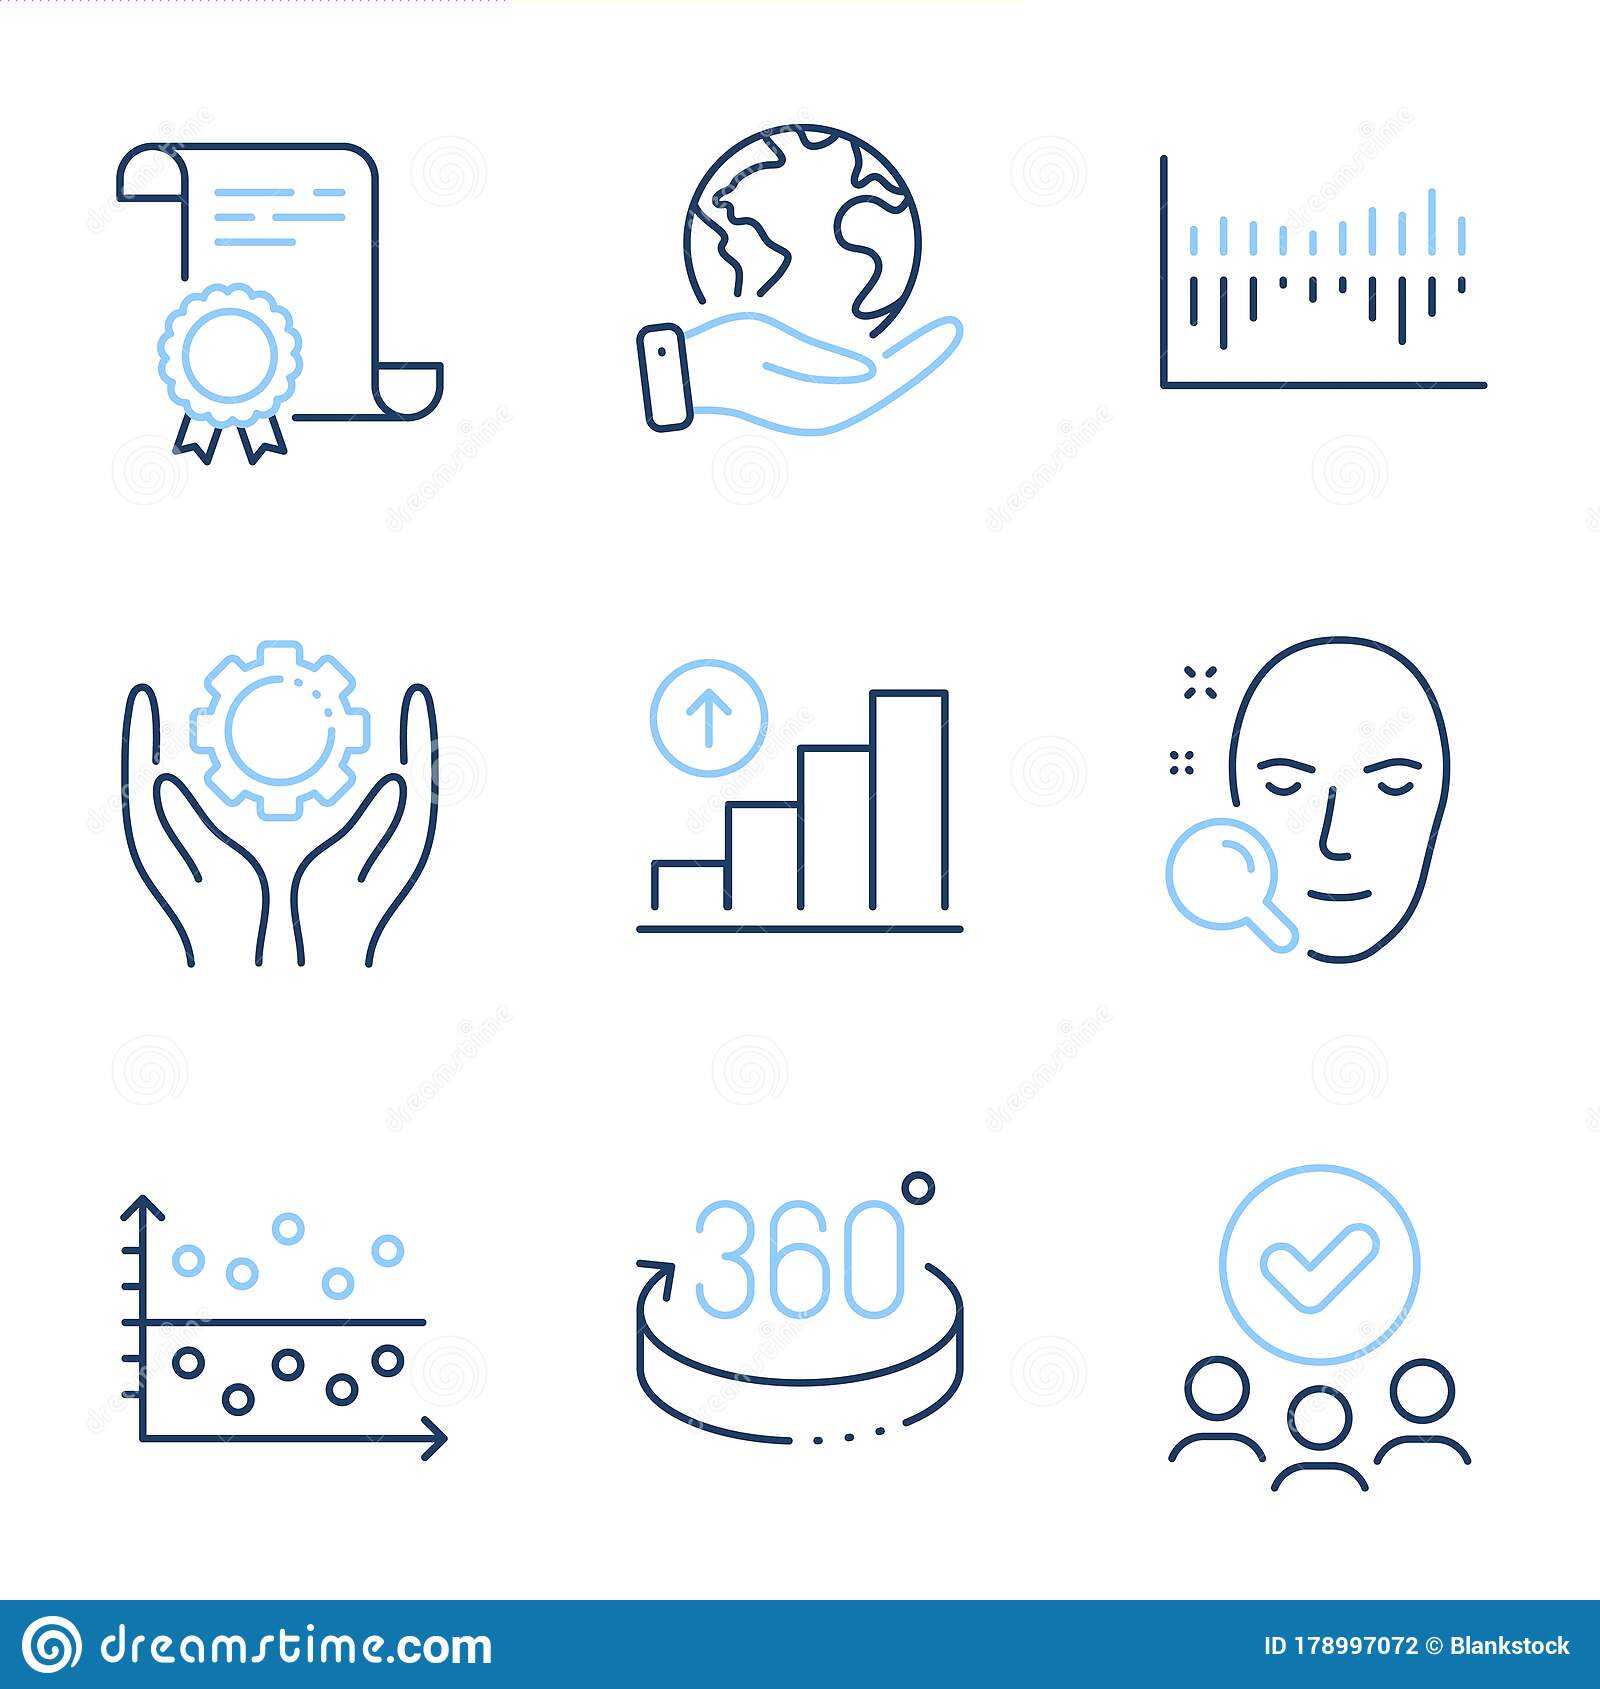 Dot Plot 360 Degrees And Face Search Icons Set Employee